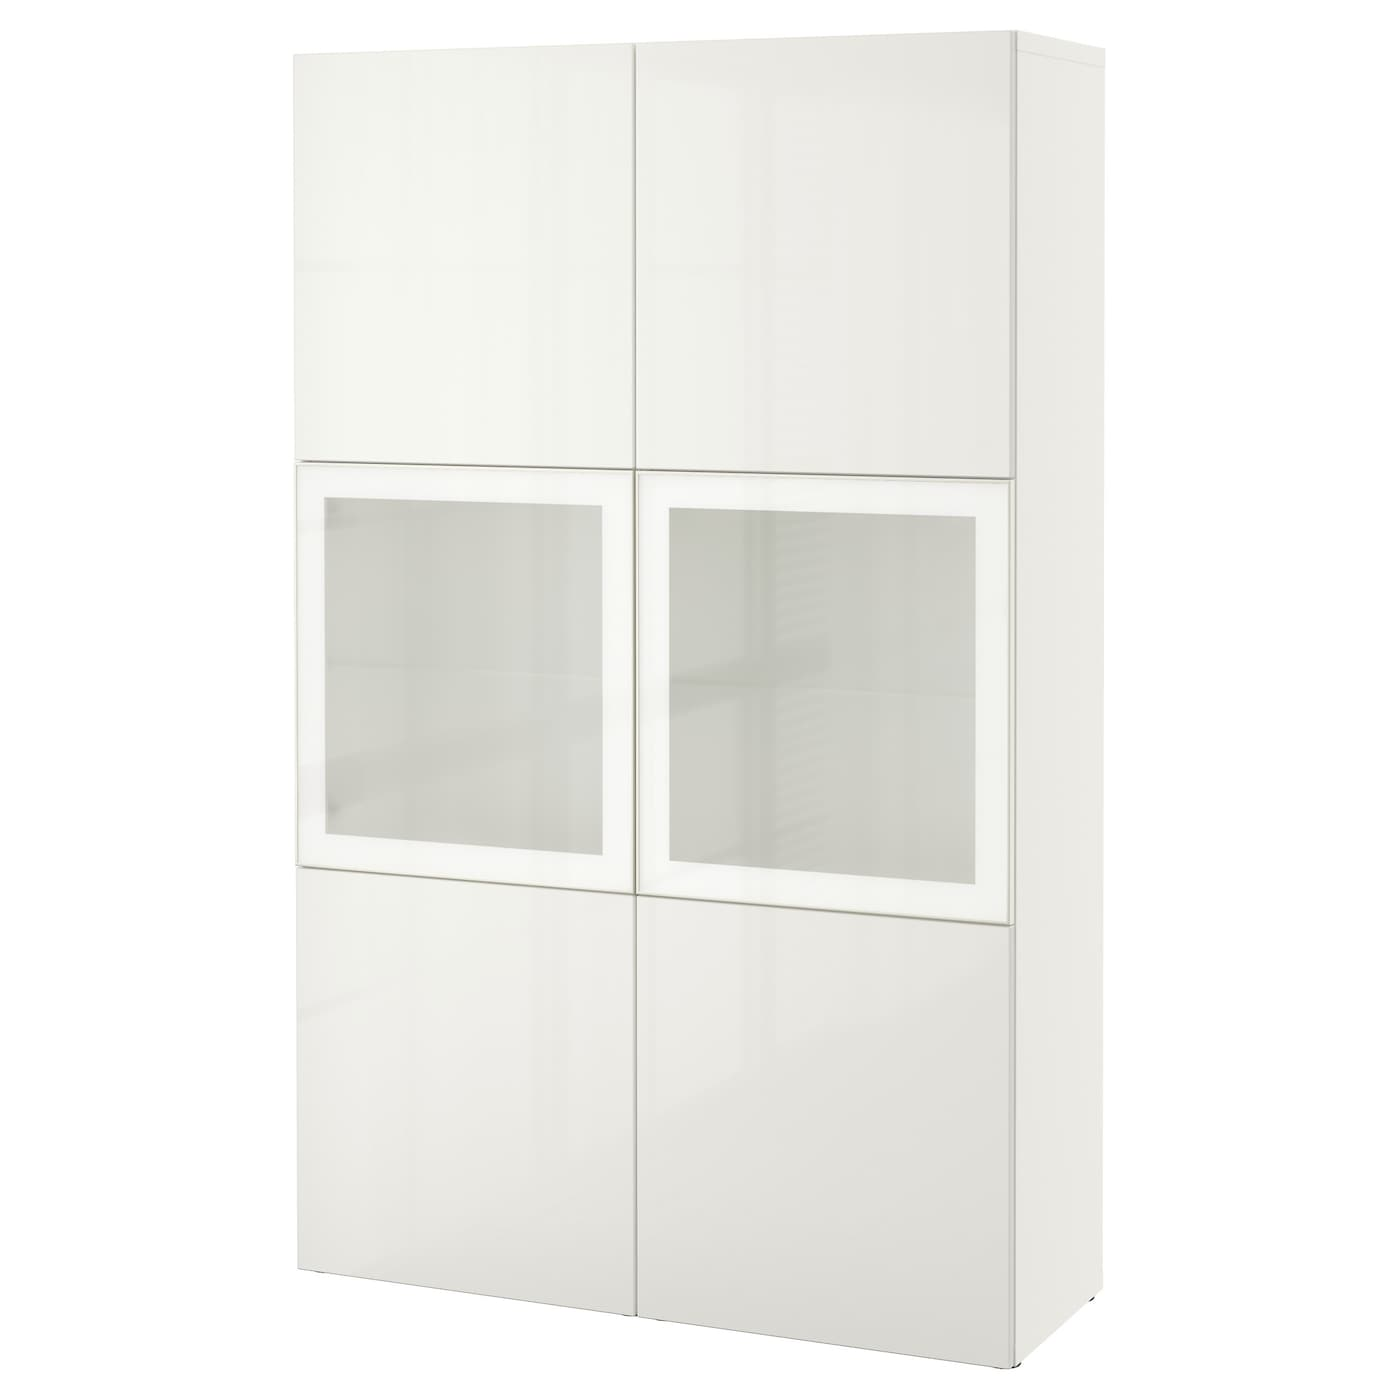 Best storage combination w glass doors white selsviken high gloss white fros - Vitrine en verre ikea ...